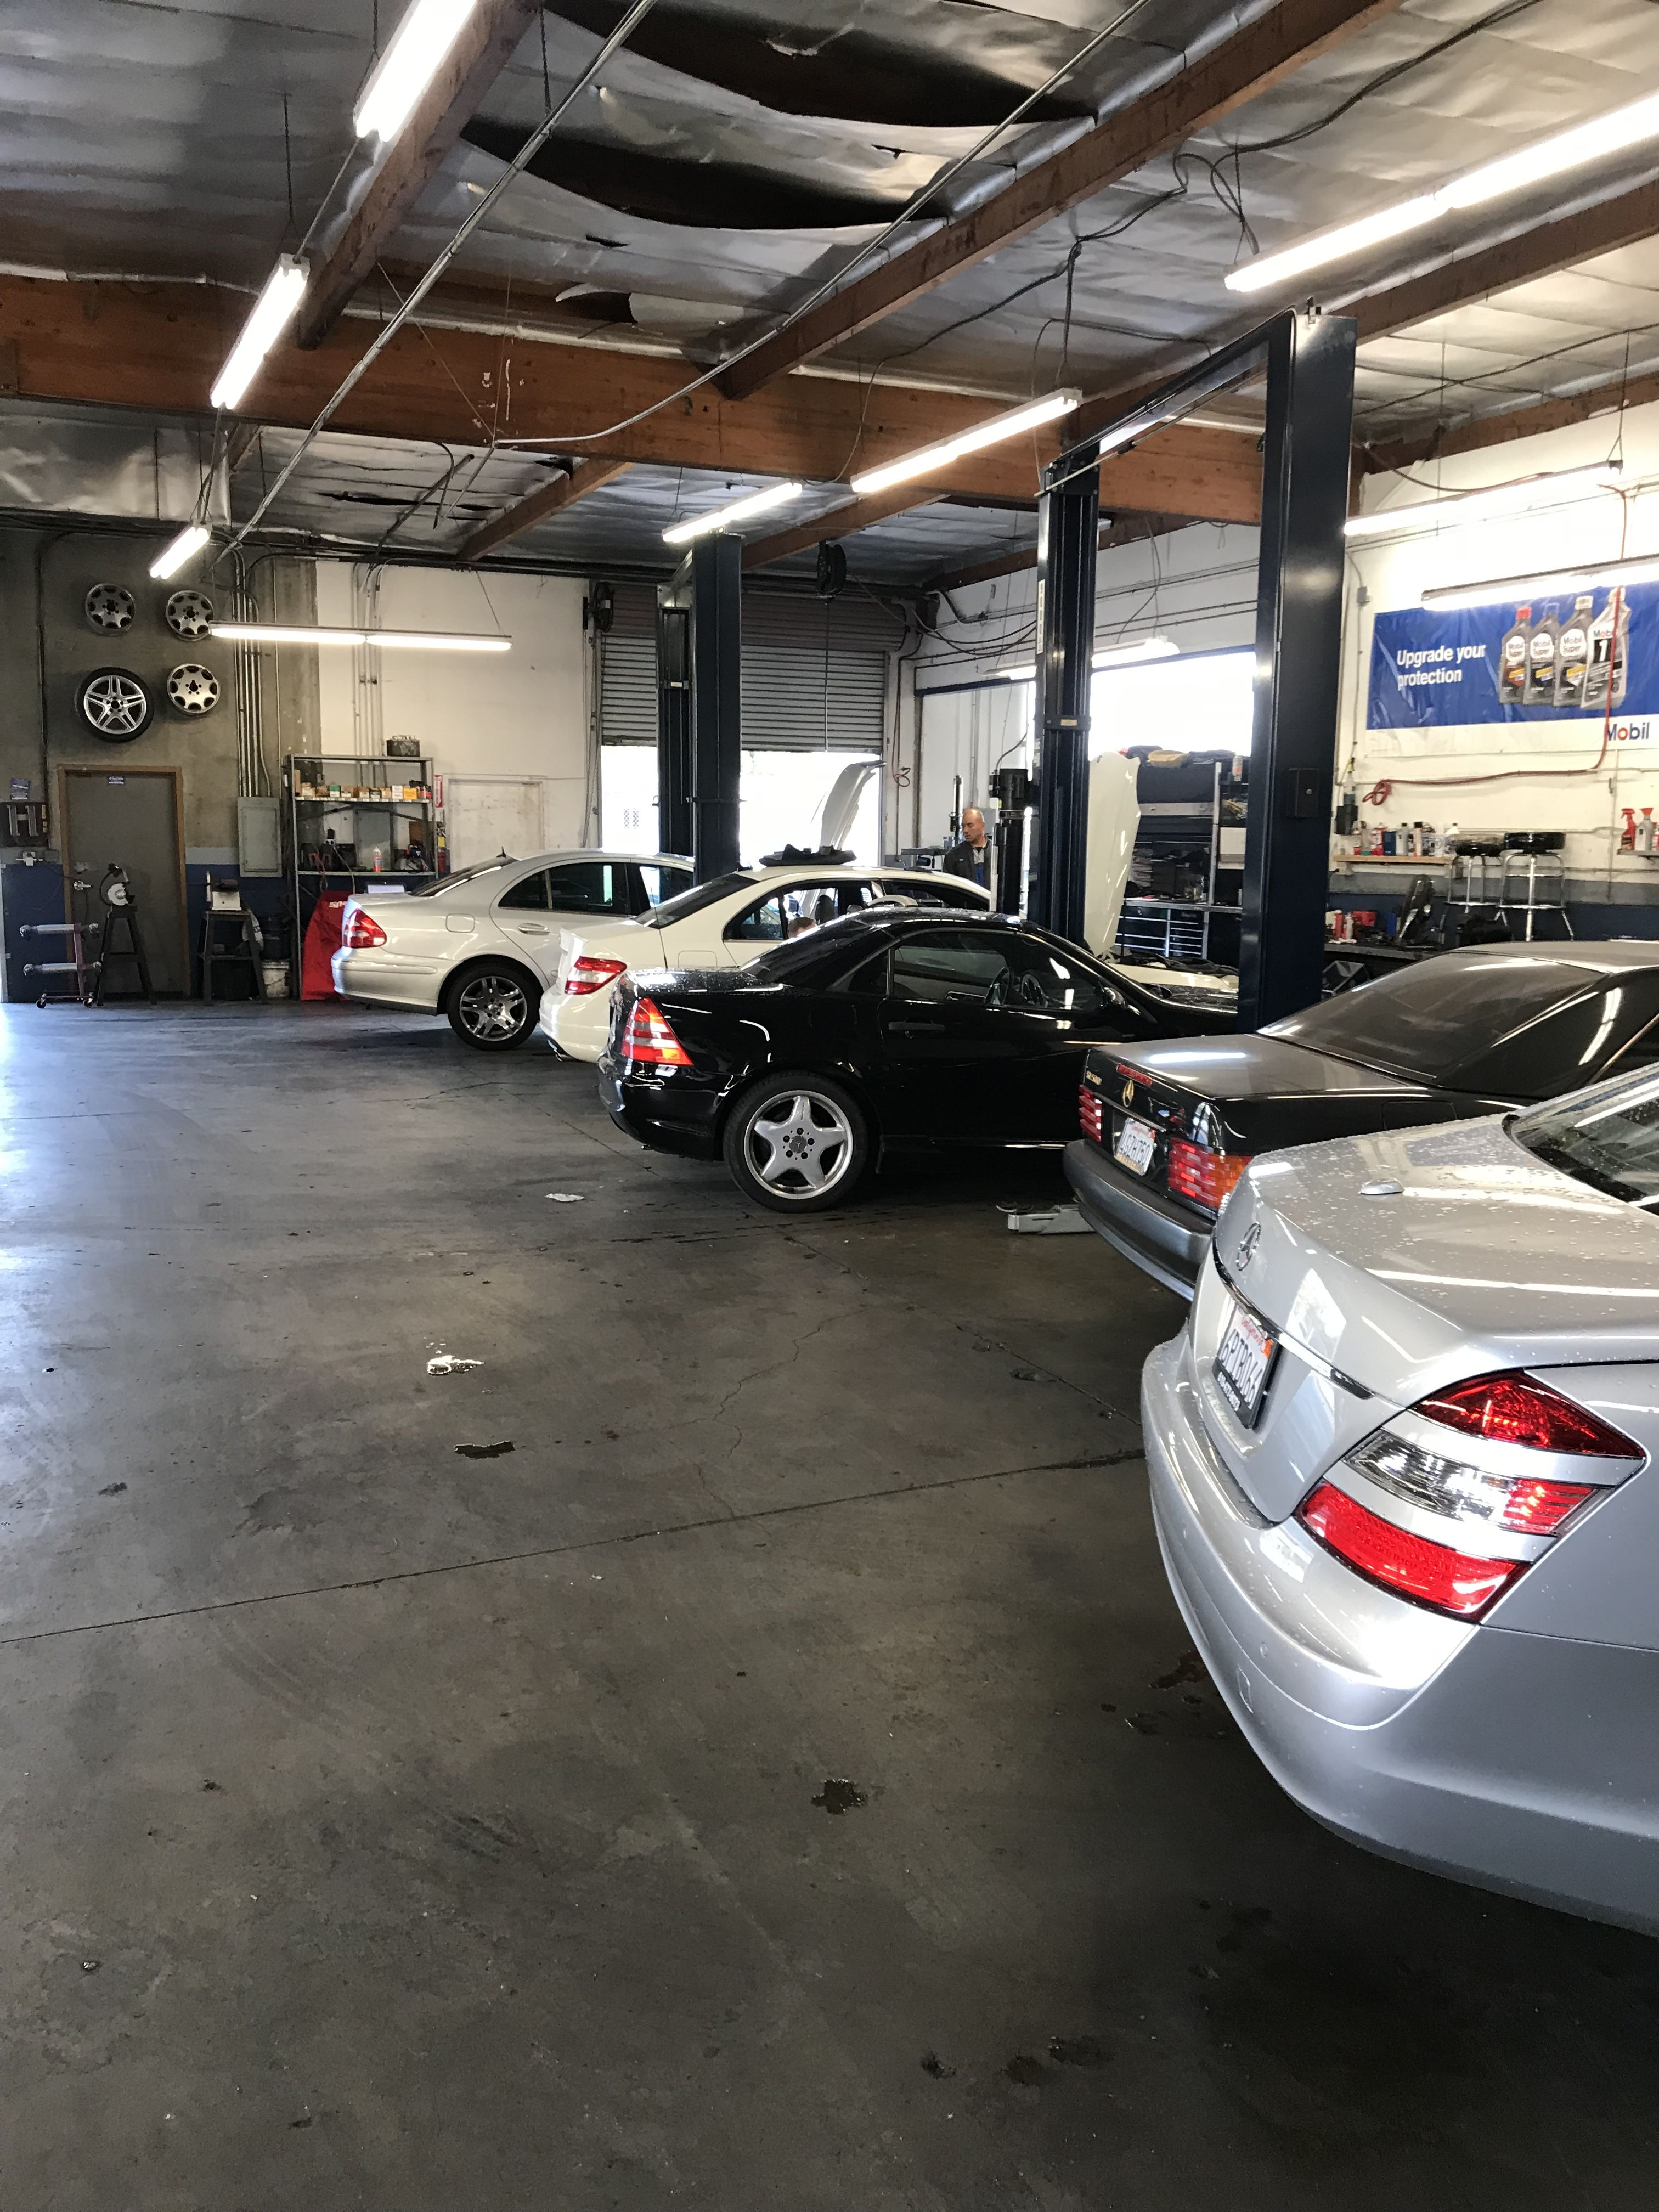 Full Day Of Mercedes Benz Work At South Bay Autohaus